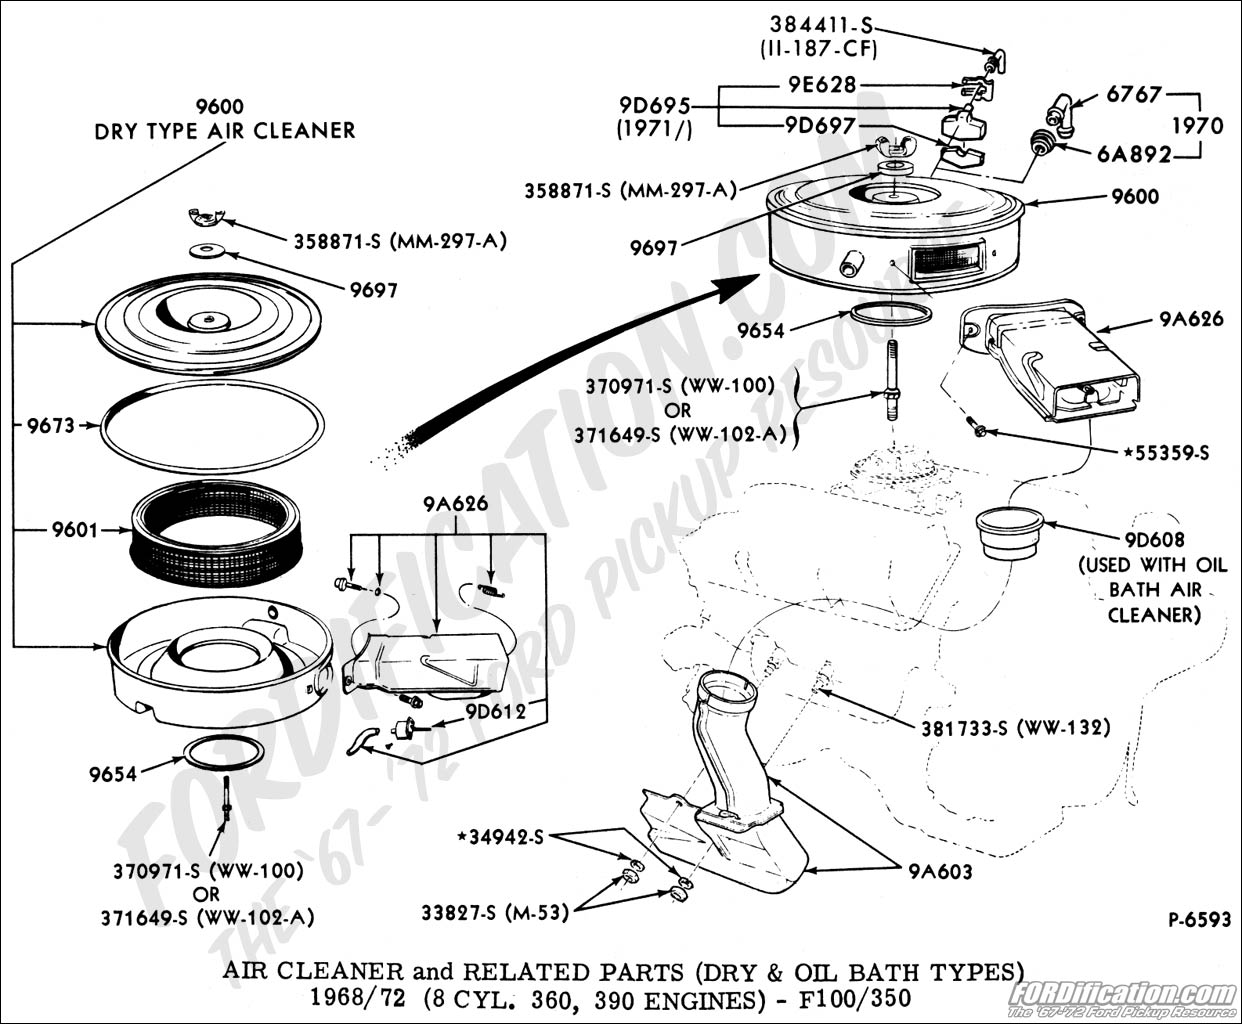 1974 Ford Torino Vacuum Diagram Trusted Wiring F100 Lines Mess 1978 Bronco